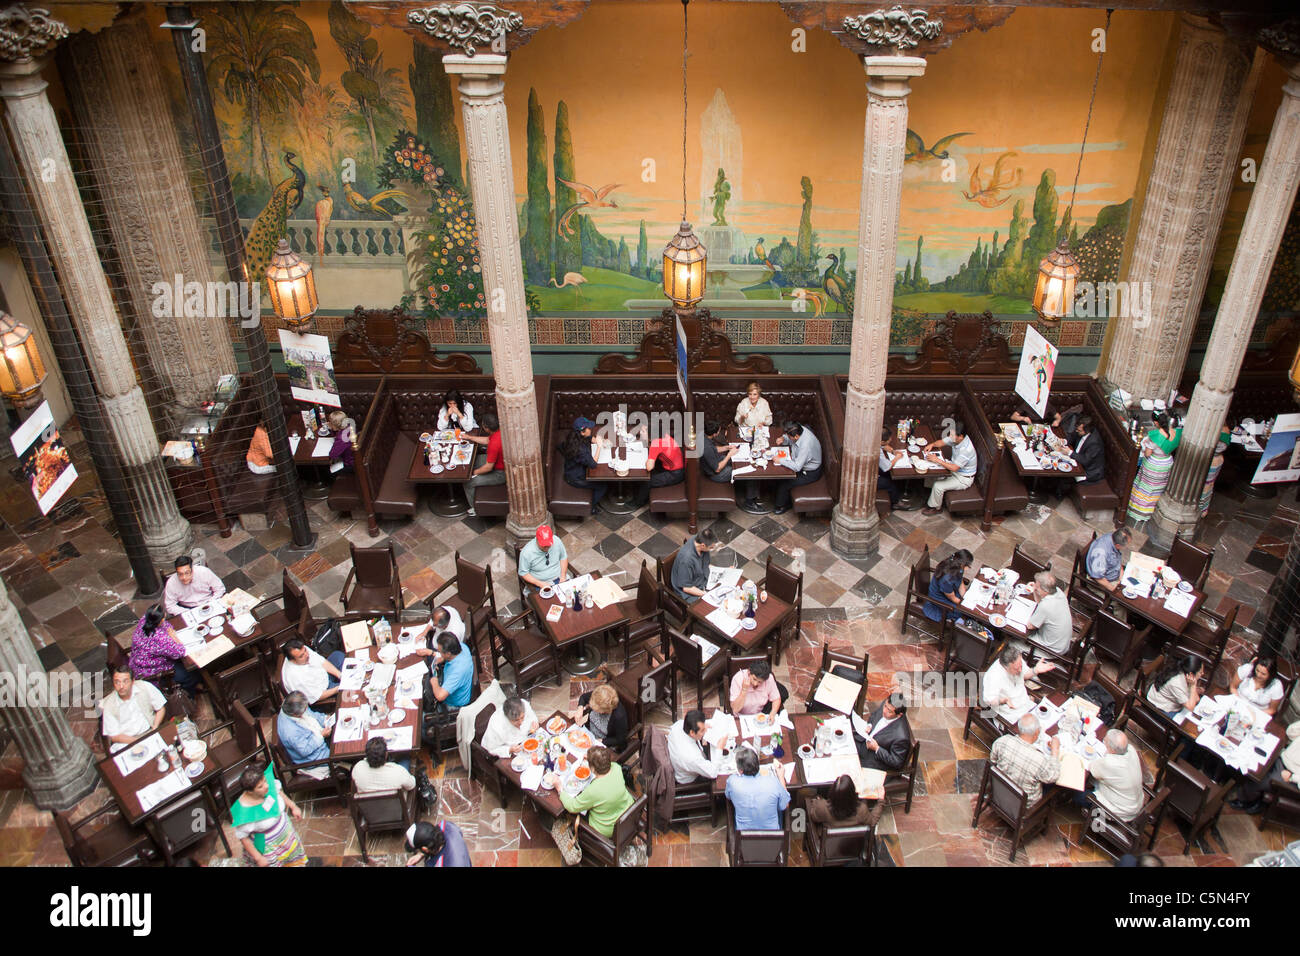 Sanborns restaurant house of tiles mexico city mexico for Sanborns azulejos restaurante